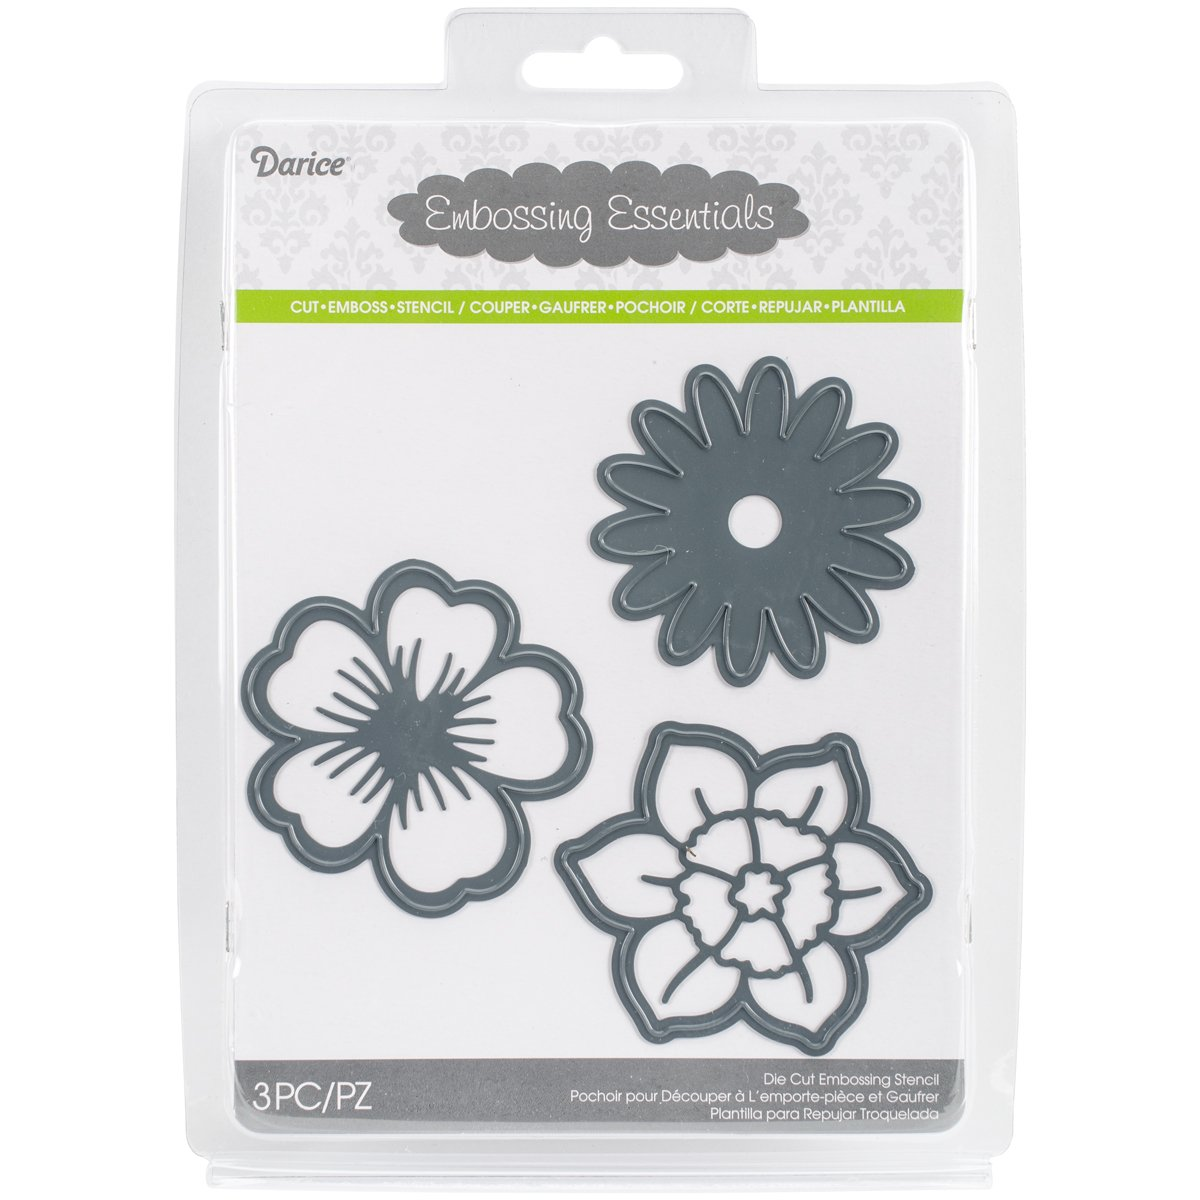 Darice 2014-102 Embossing Essentials Dies-Flowers